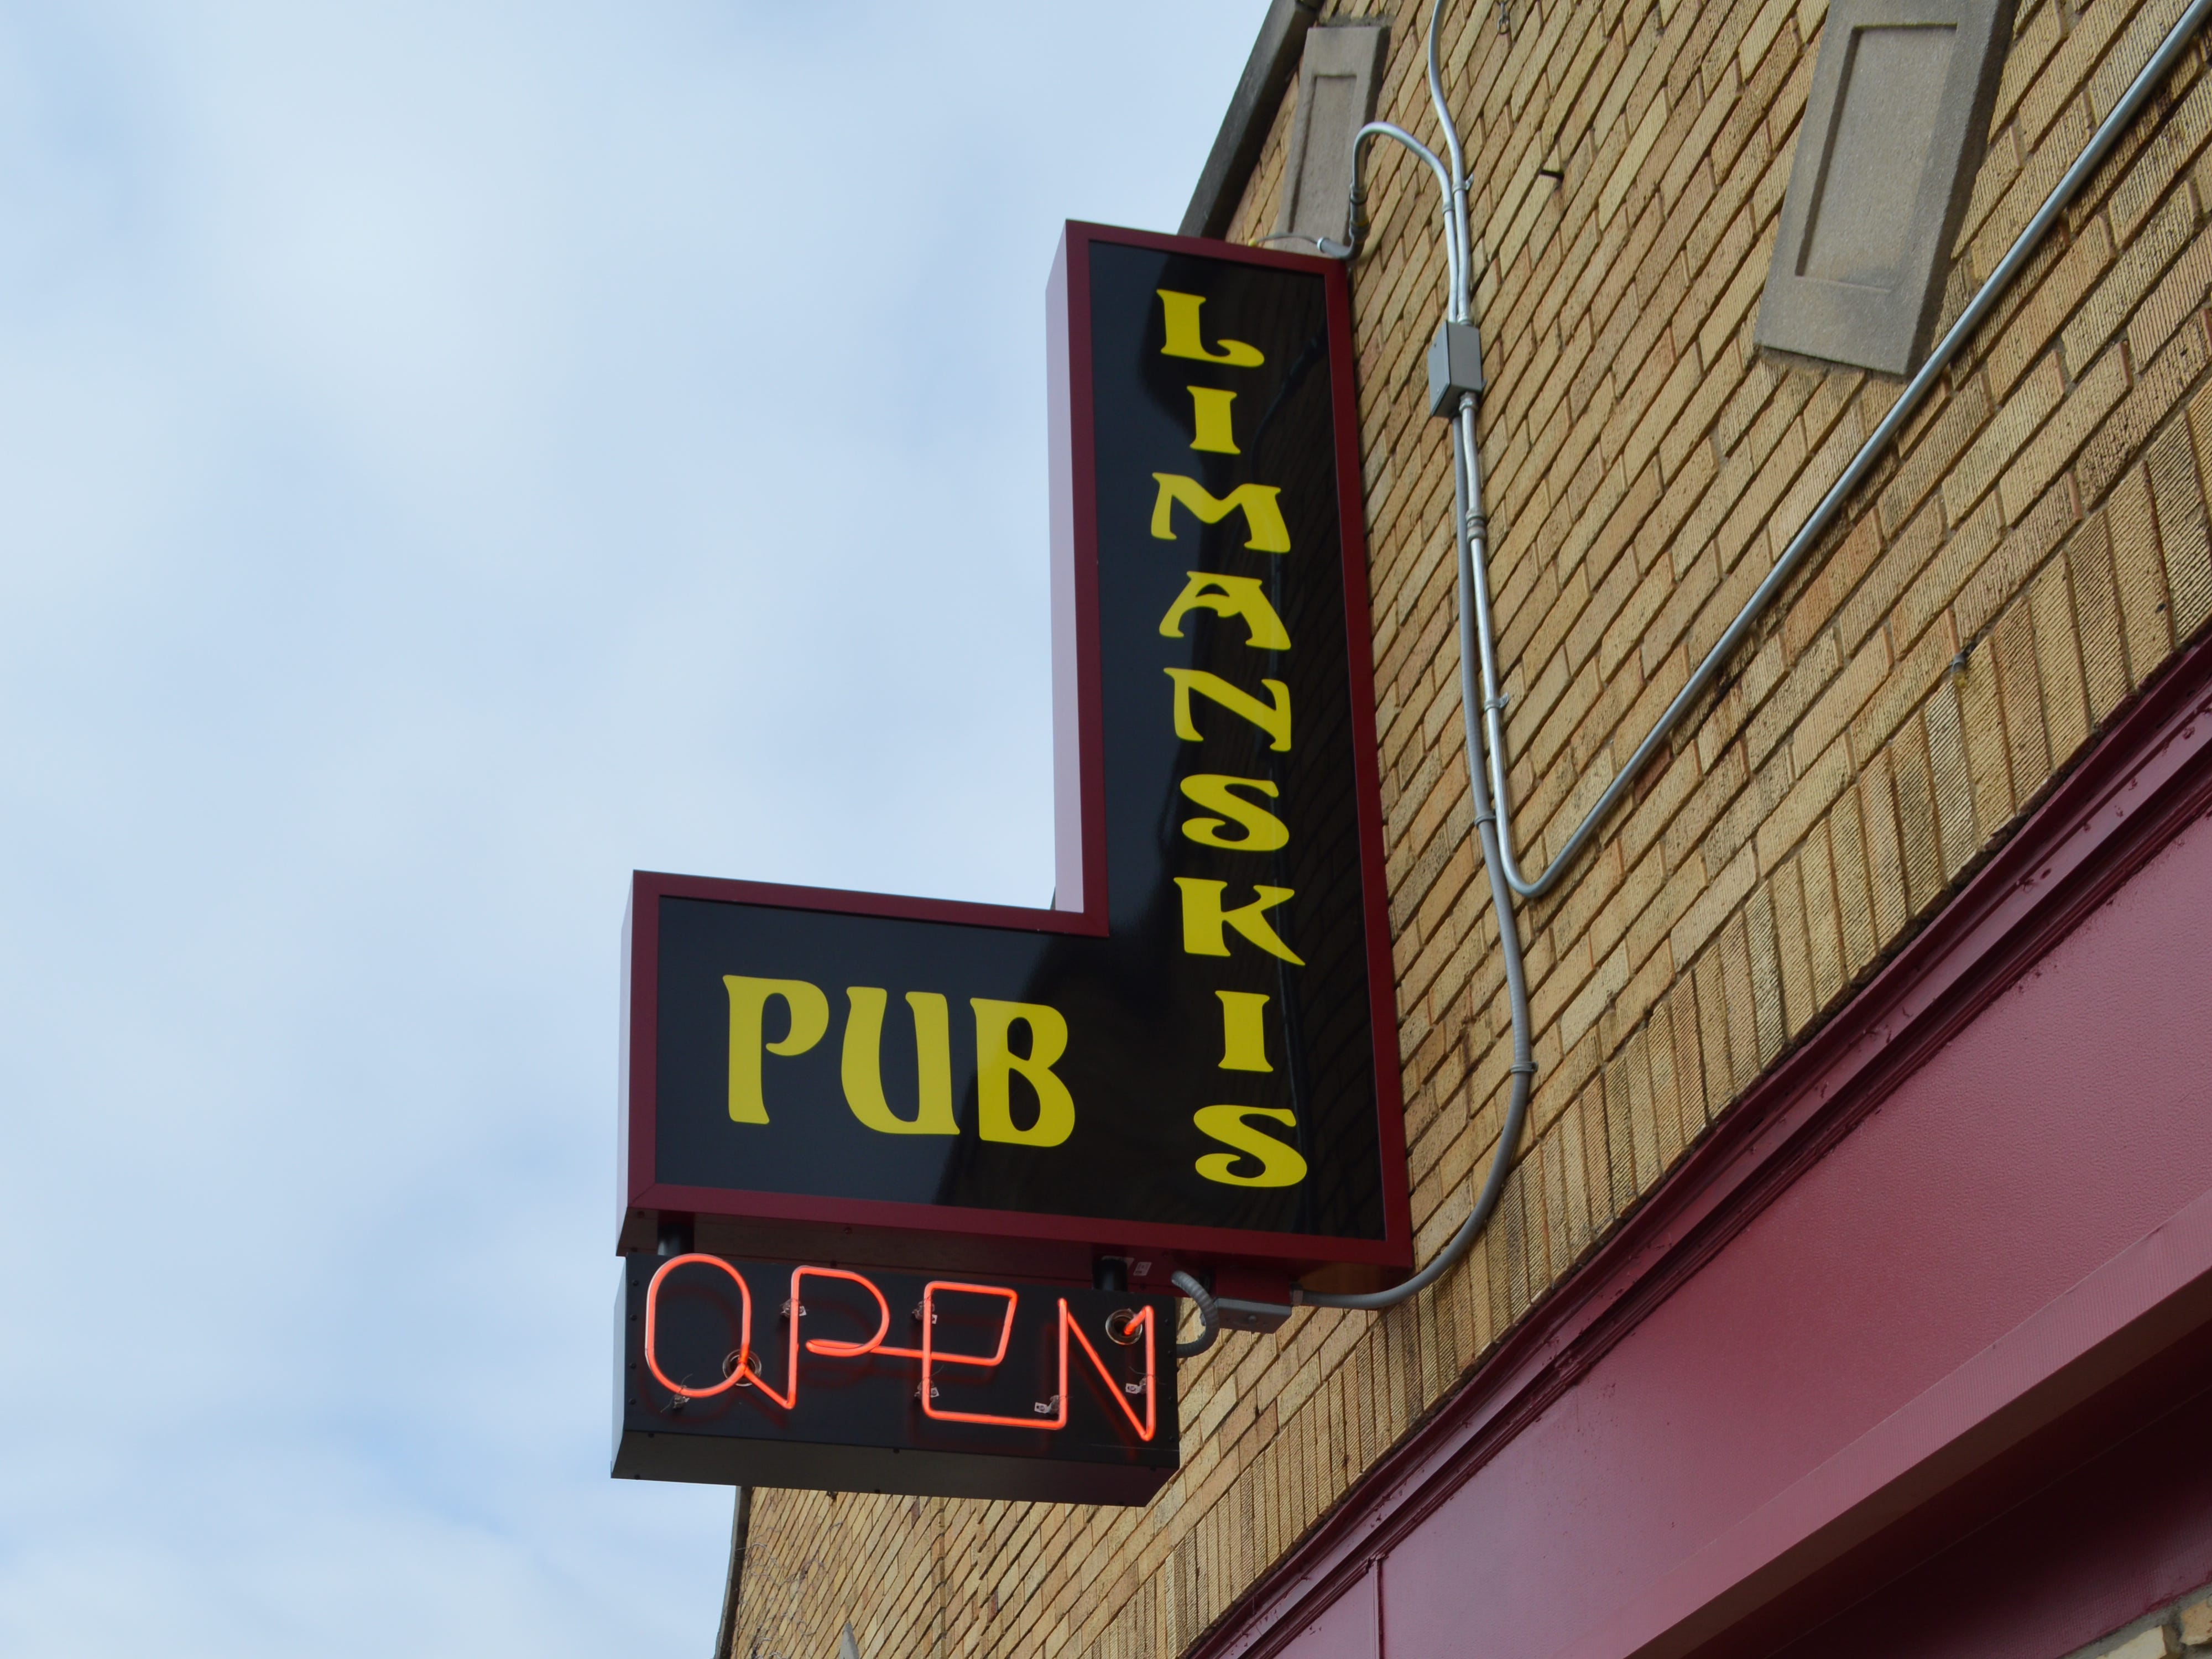 Limanski's Pub is located at 8900 W. Greenfield Ave., West Allis.